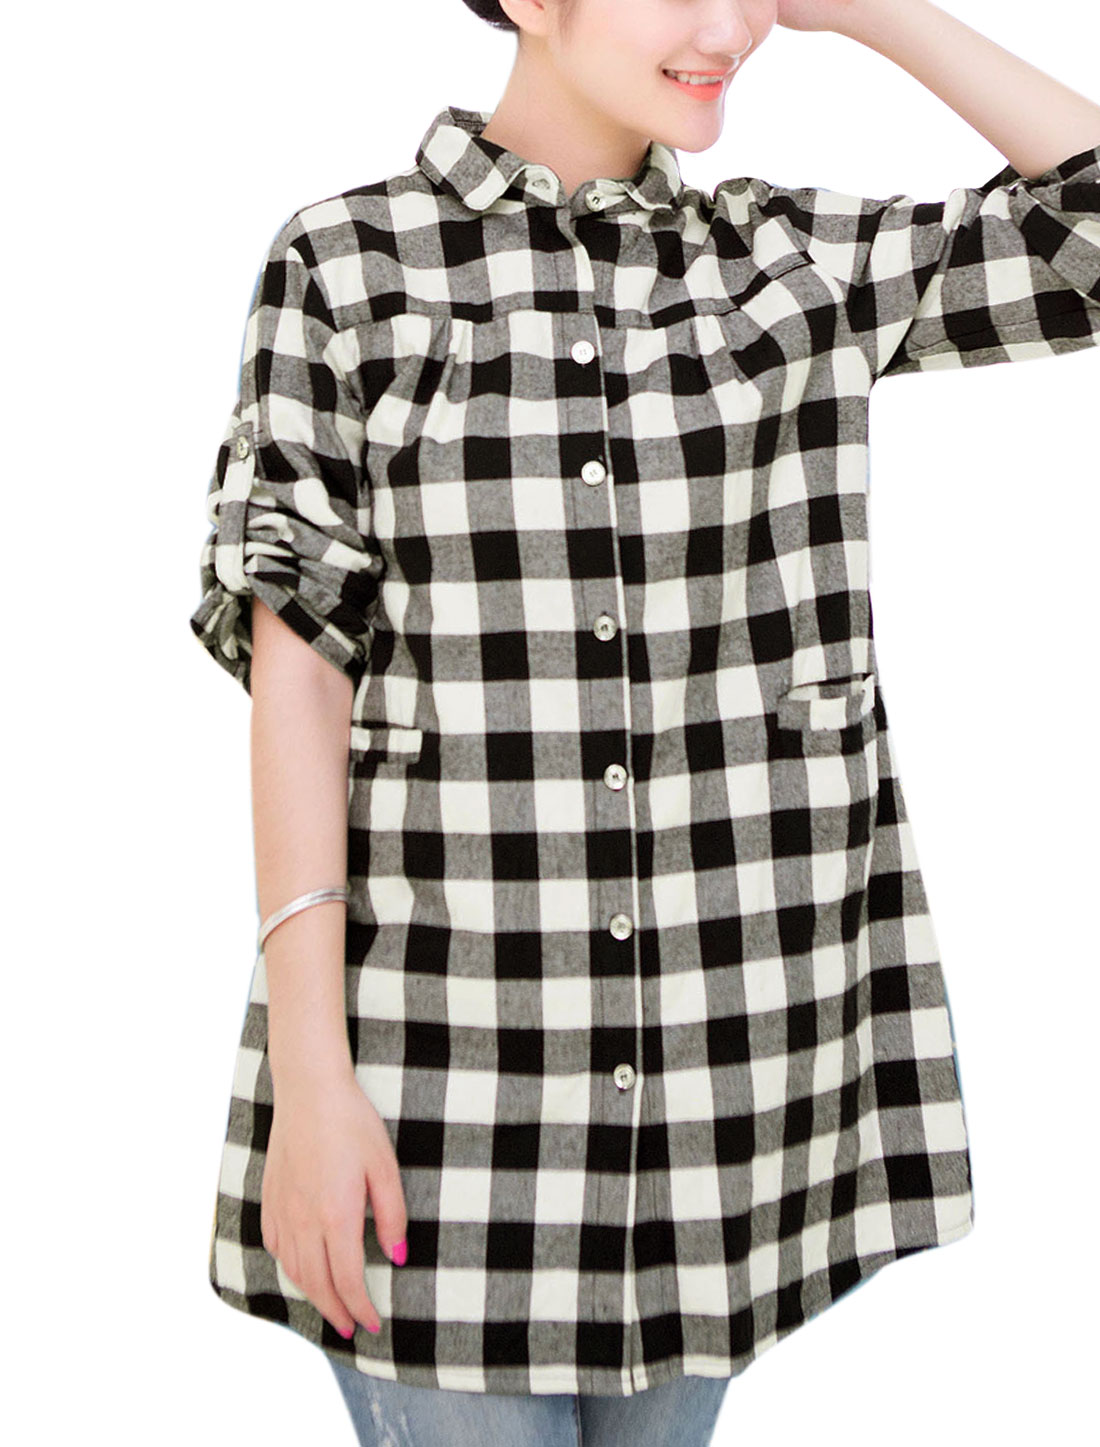 Motherhood Plaids Pattern Roll Up Cuffs Welt Pockets Leisure Tunic Shirt Black White XL